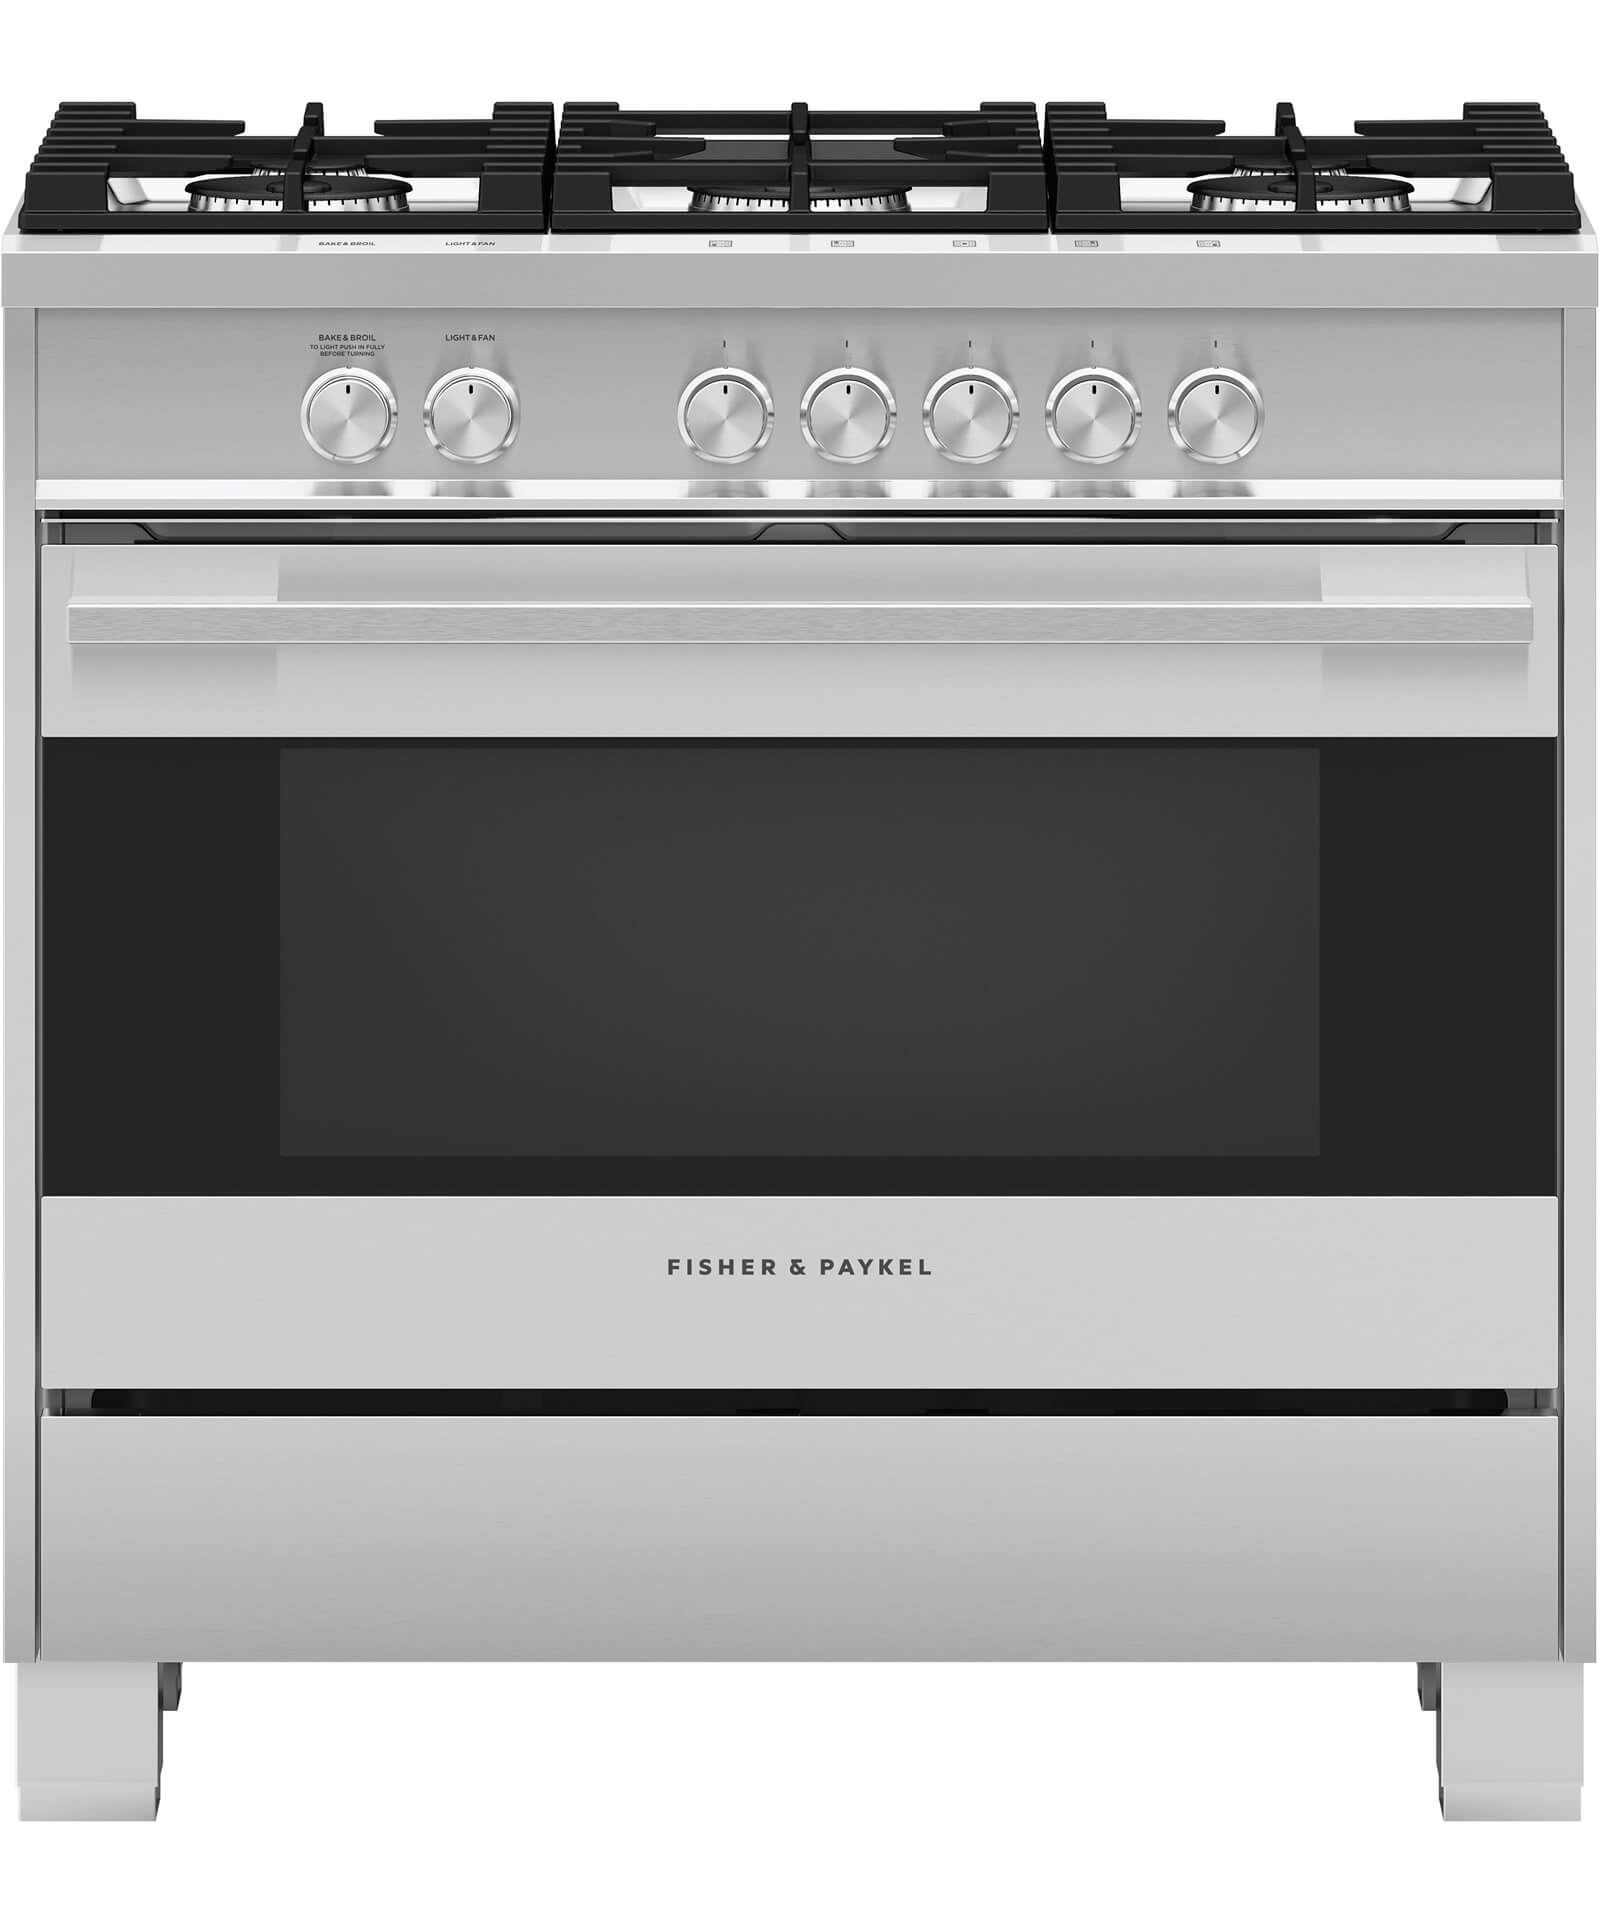 "OR36SDG4X1 - 36"" Gas Range - 81300"